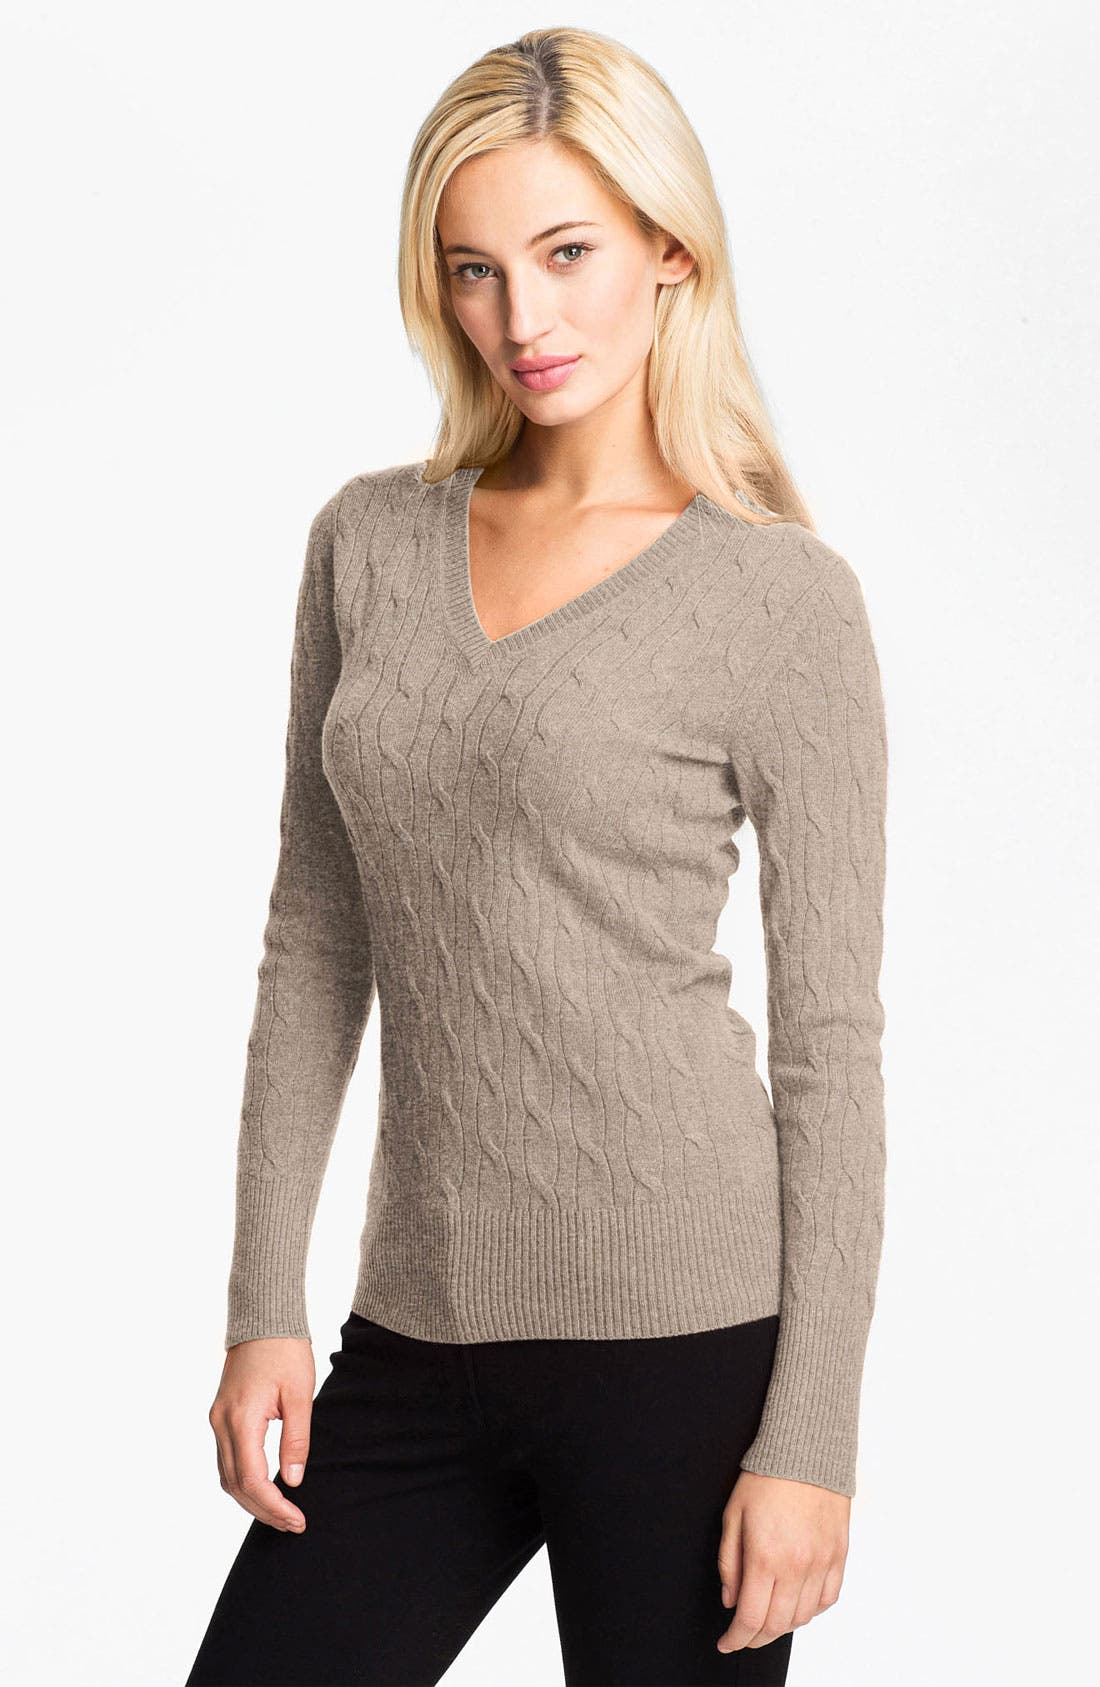 Main Image - Christopher Fischer 'Elisa' Cable Cashmere Sweater (Online Exclusive)